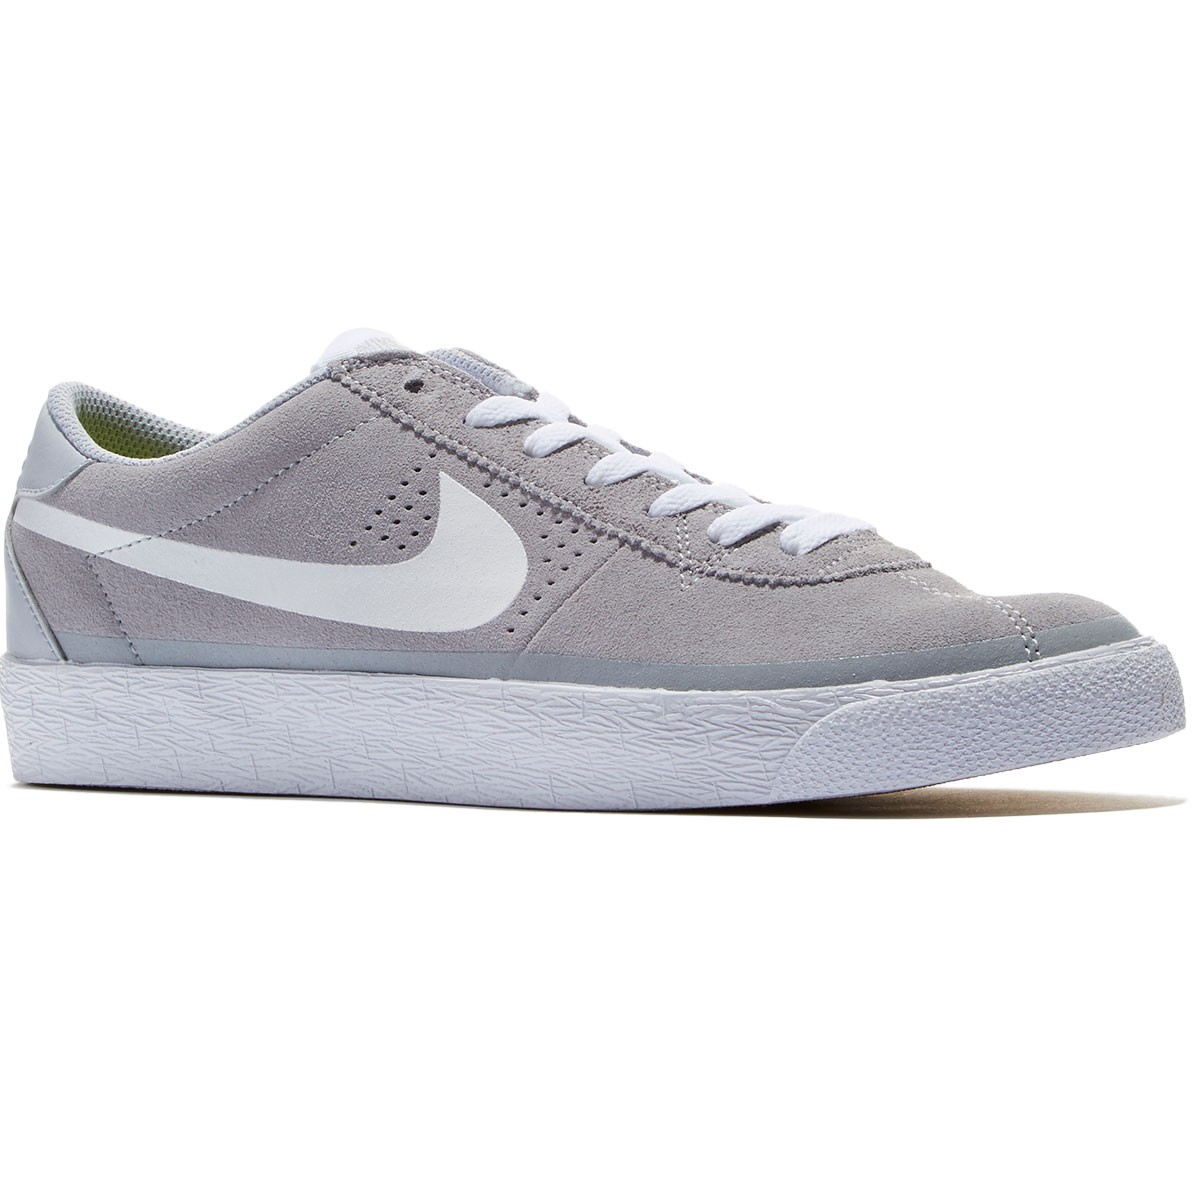 check out 90d34 6f720 Nike SB Bruin Premium SE Shoes - Wolf GreyGumLight BrownWhite